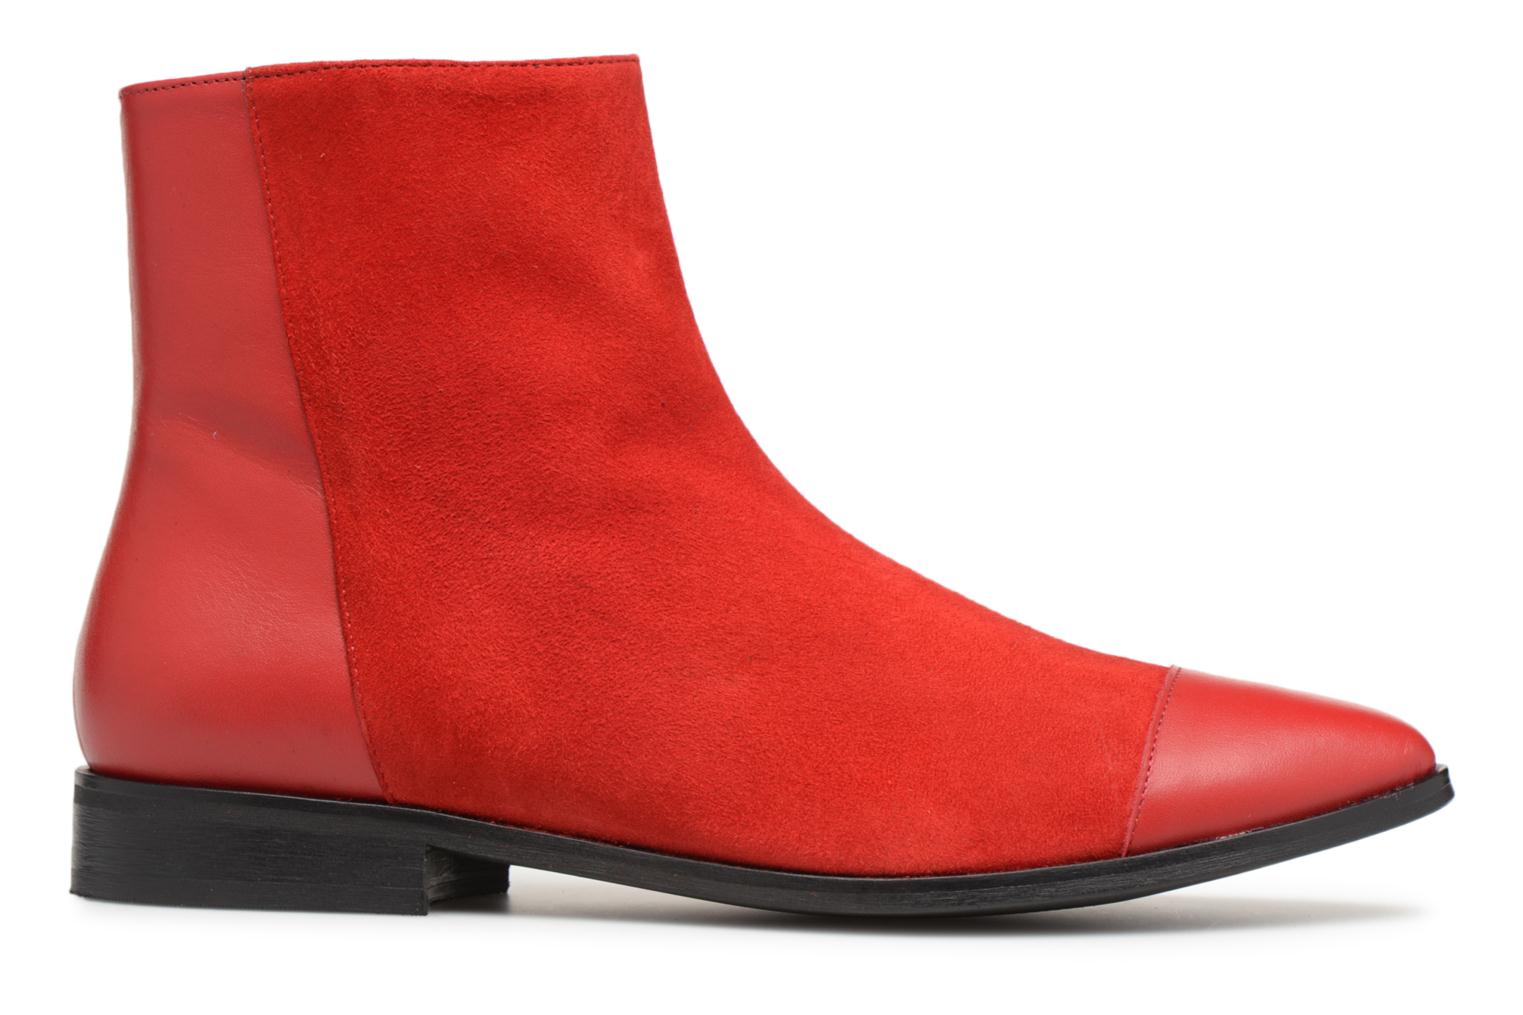 by 1 SARENZA Et Bottines Cuir Toundra Rouge Plates Made Girl Lisse Velours dxFWR4dq